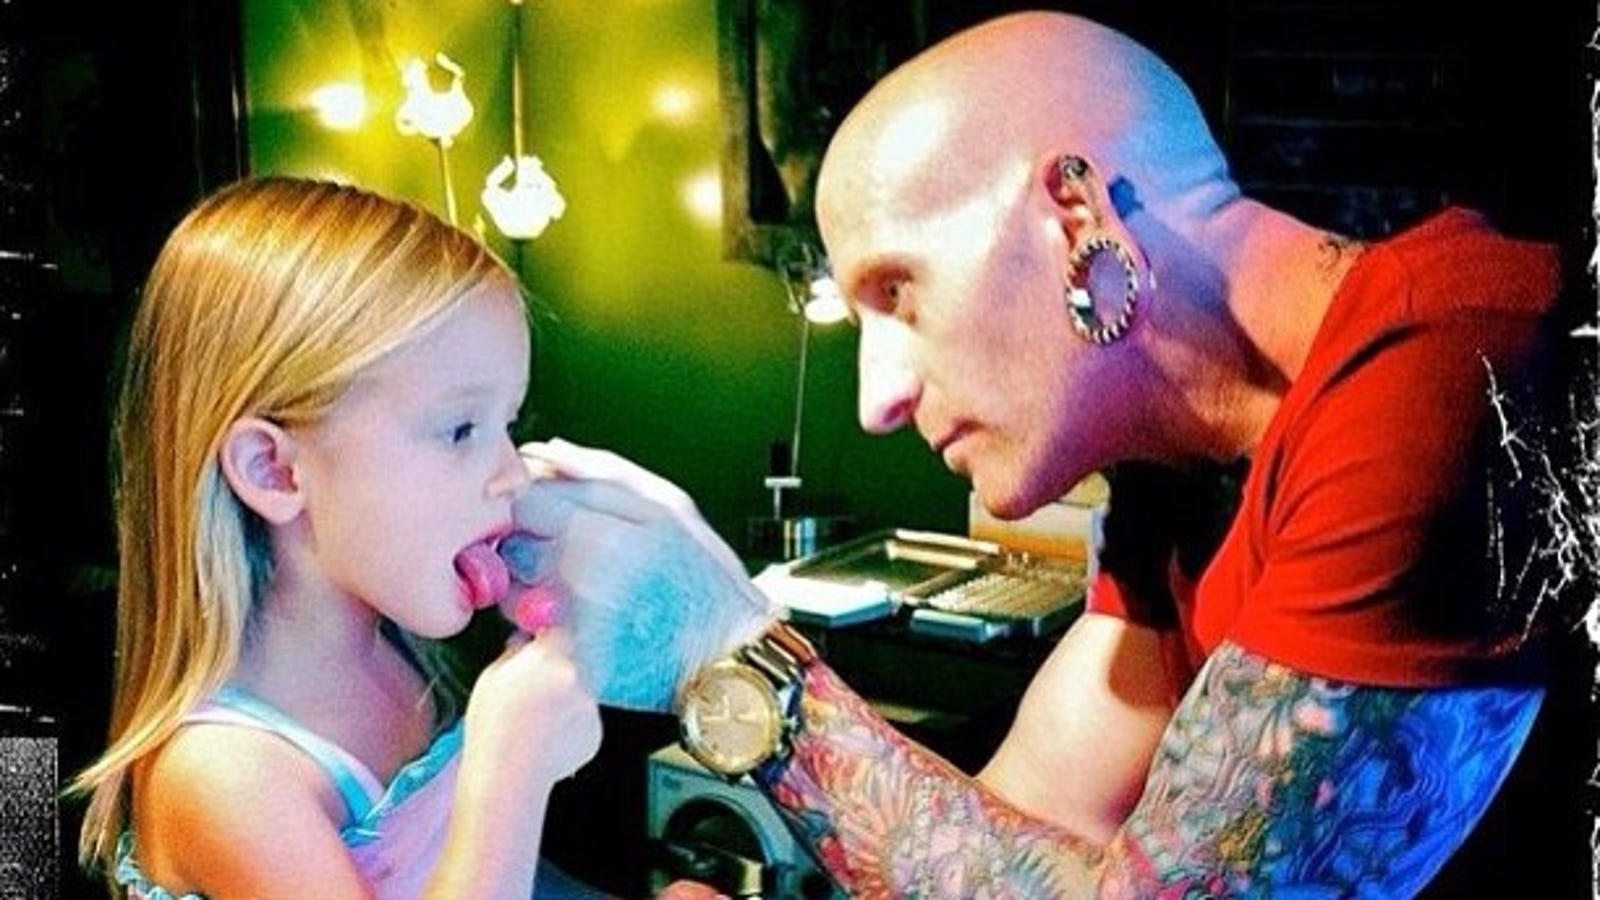 Get Your Kids Ears Pierced At A Tattoo Shop Because They Know What